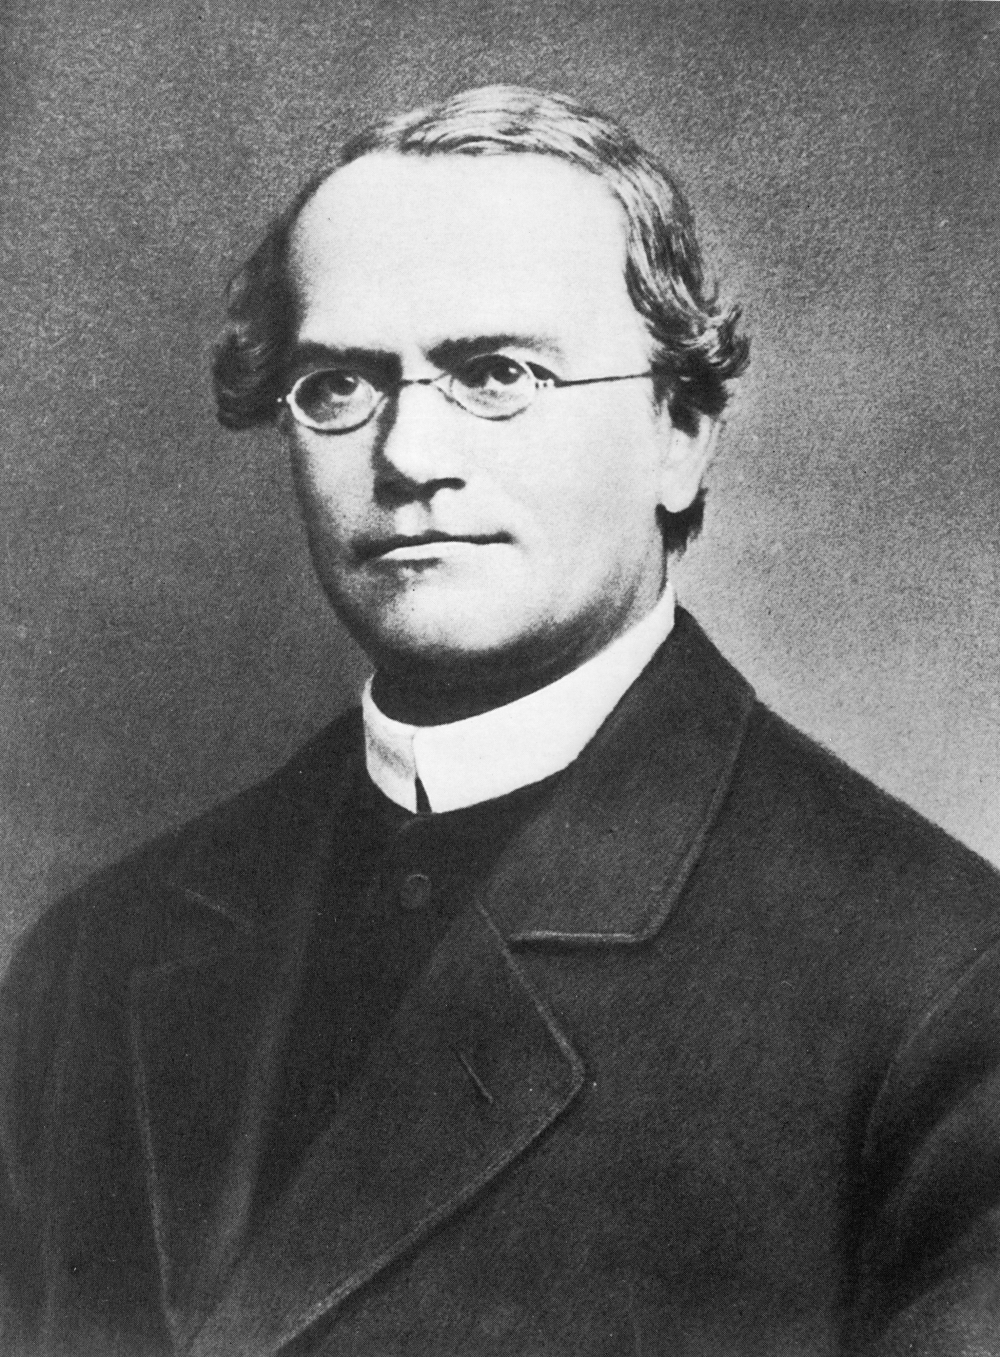 Gregor Johann Mendel (1822-1884) was the first person to analyze patterns of inheritance.